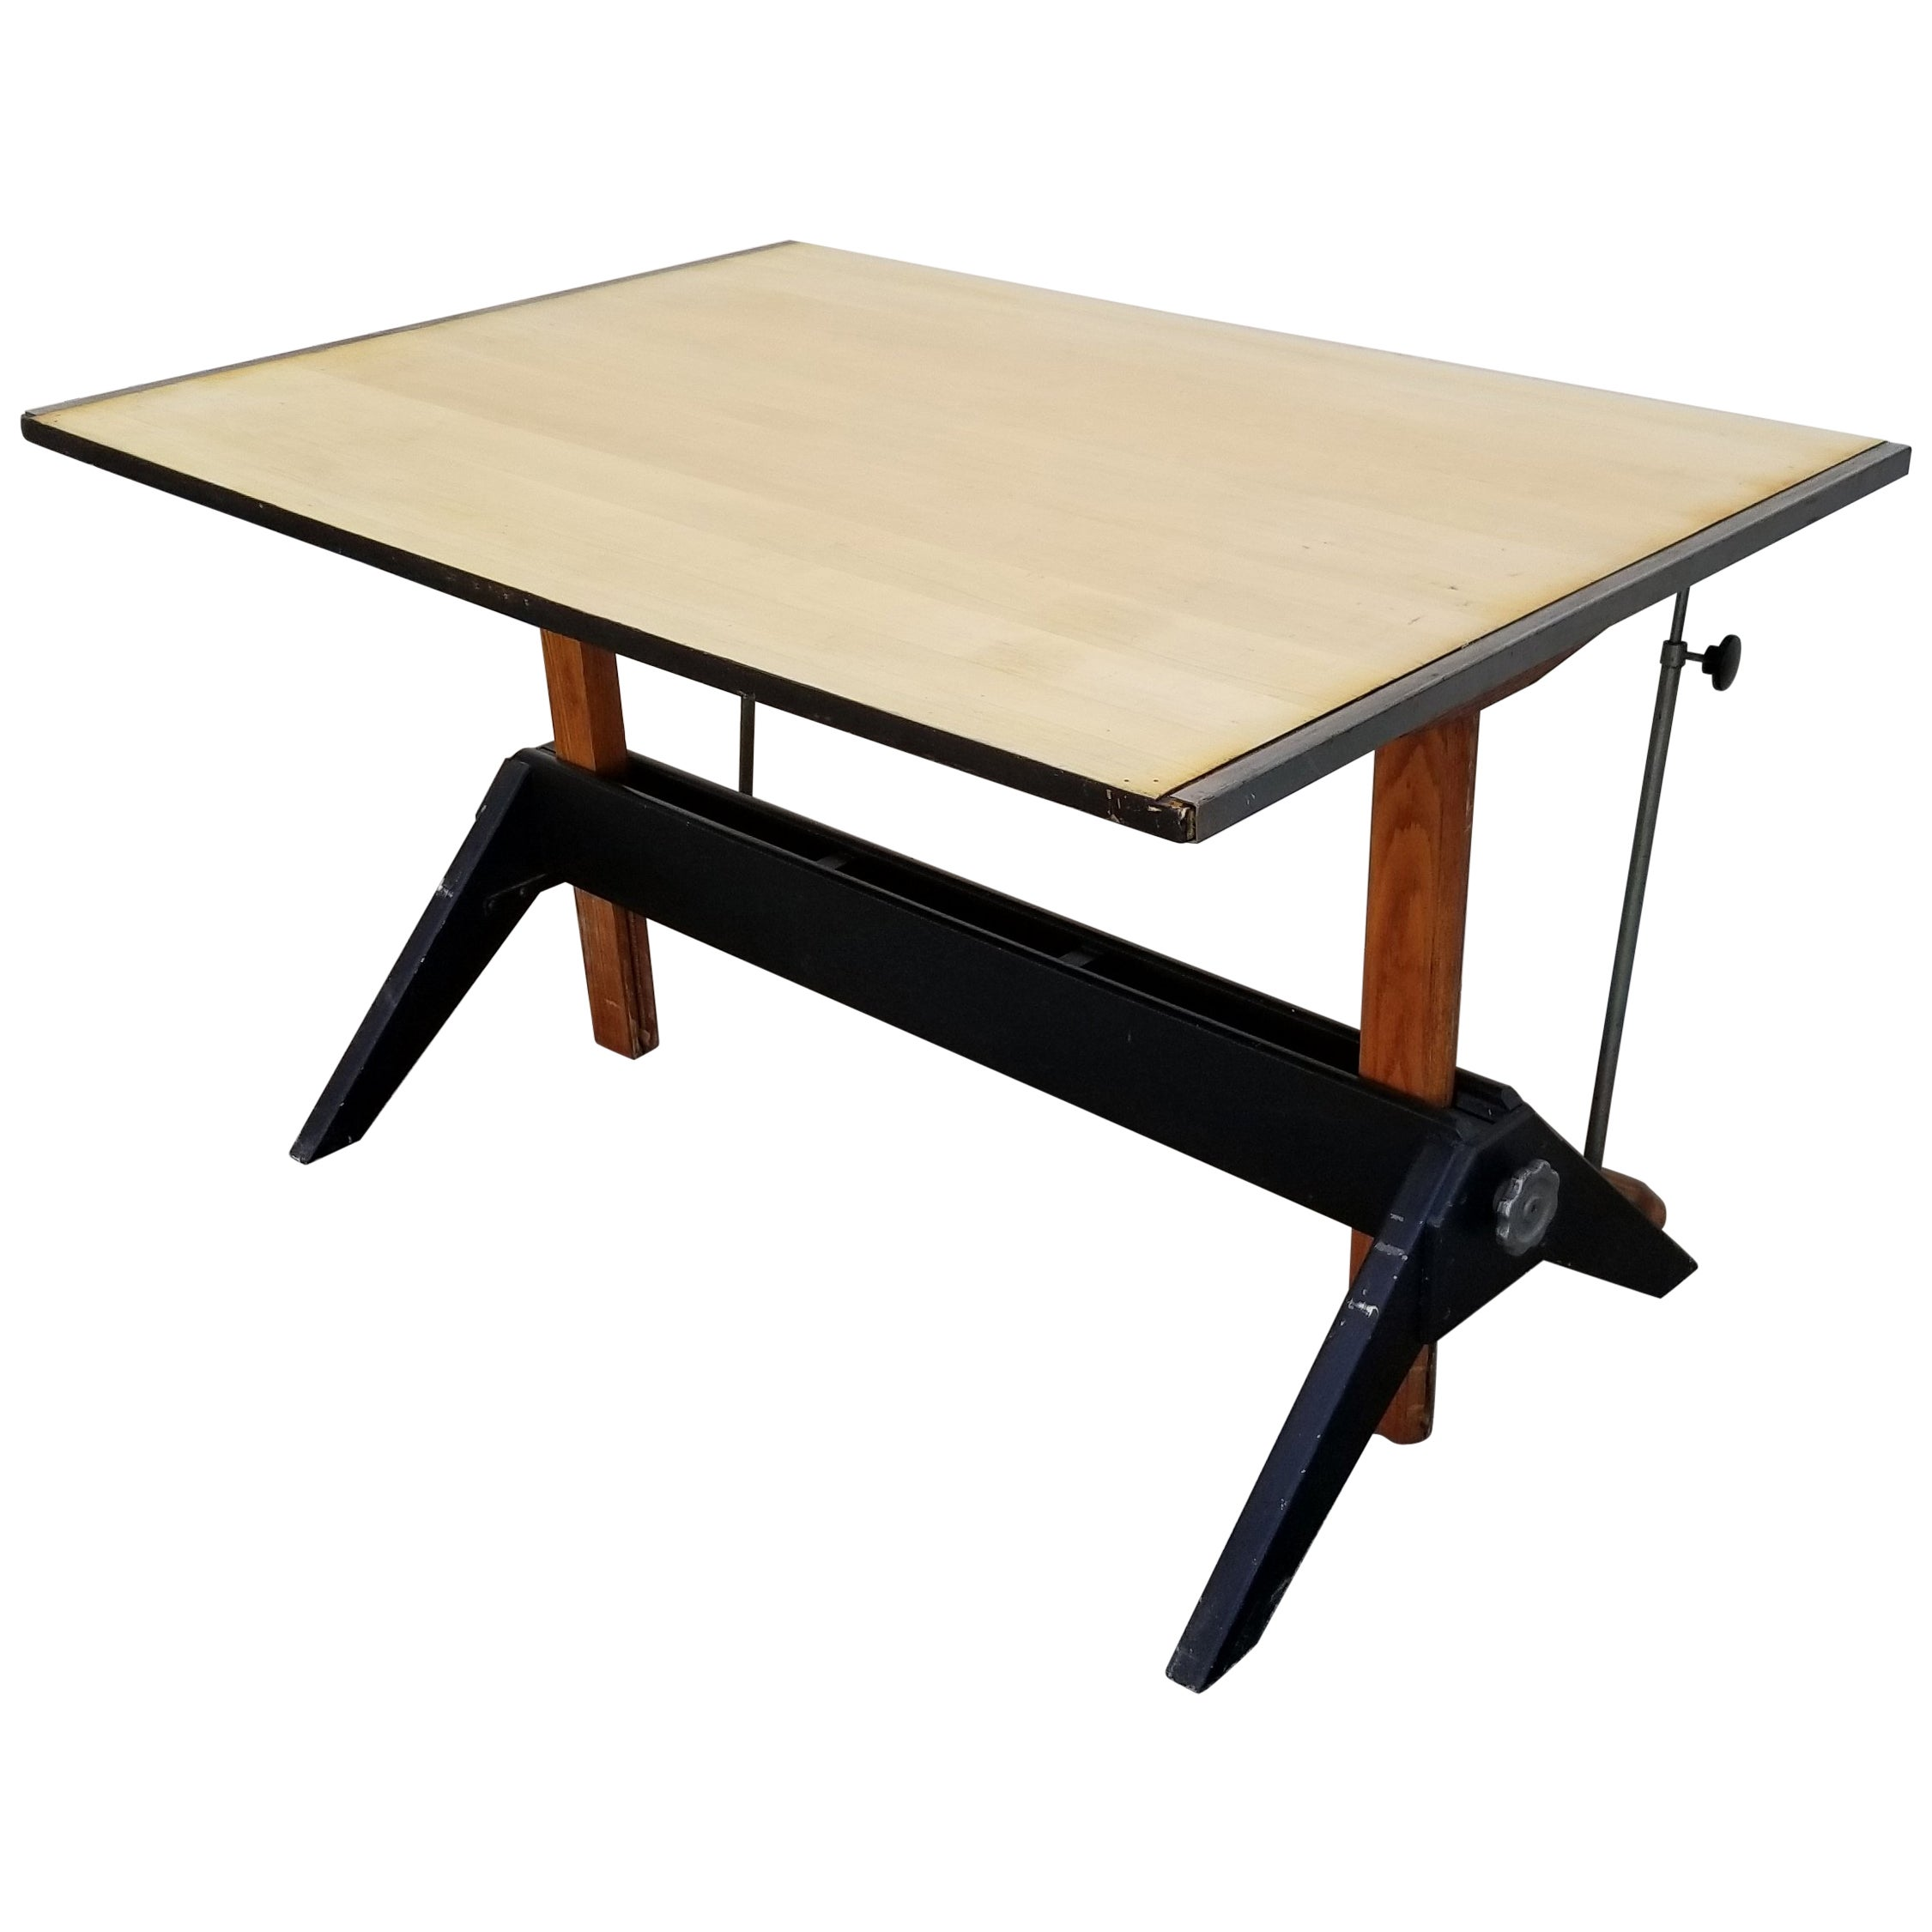 Charmant Industrial Modern Drafting Table By Mayline At 1stdibs